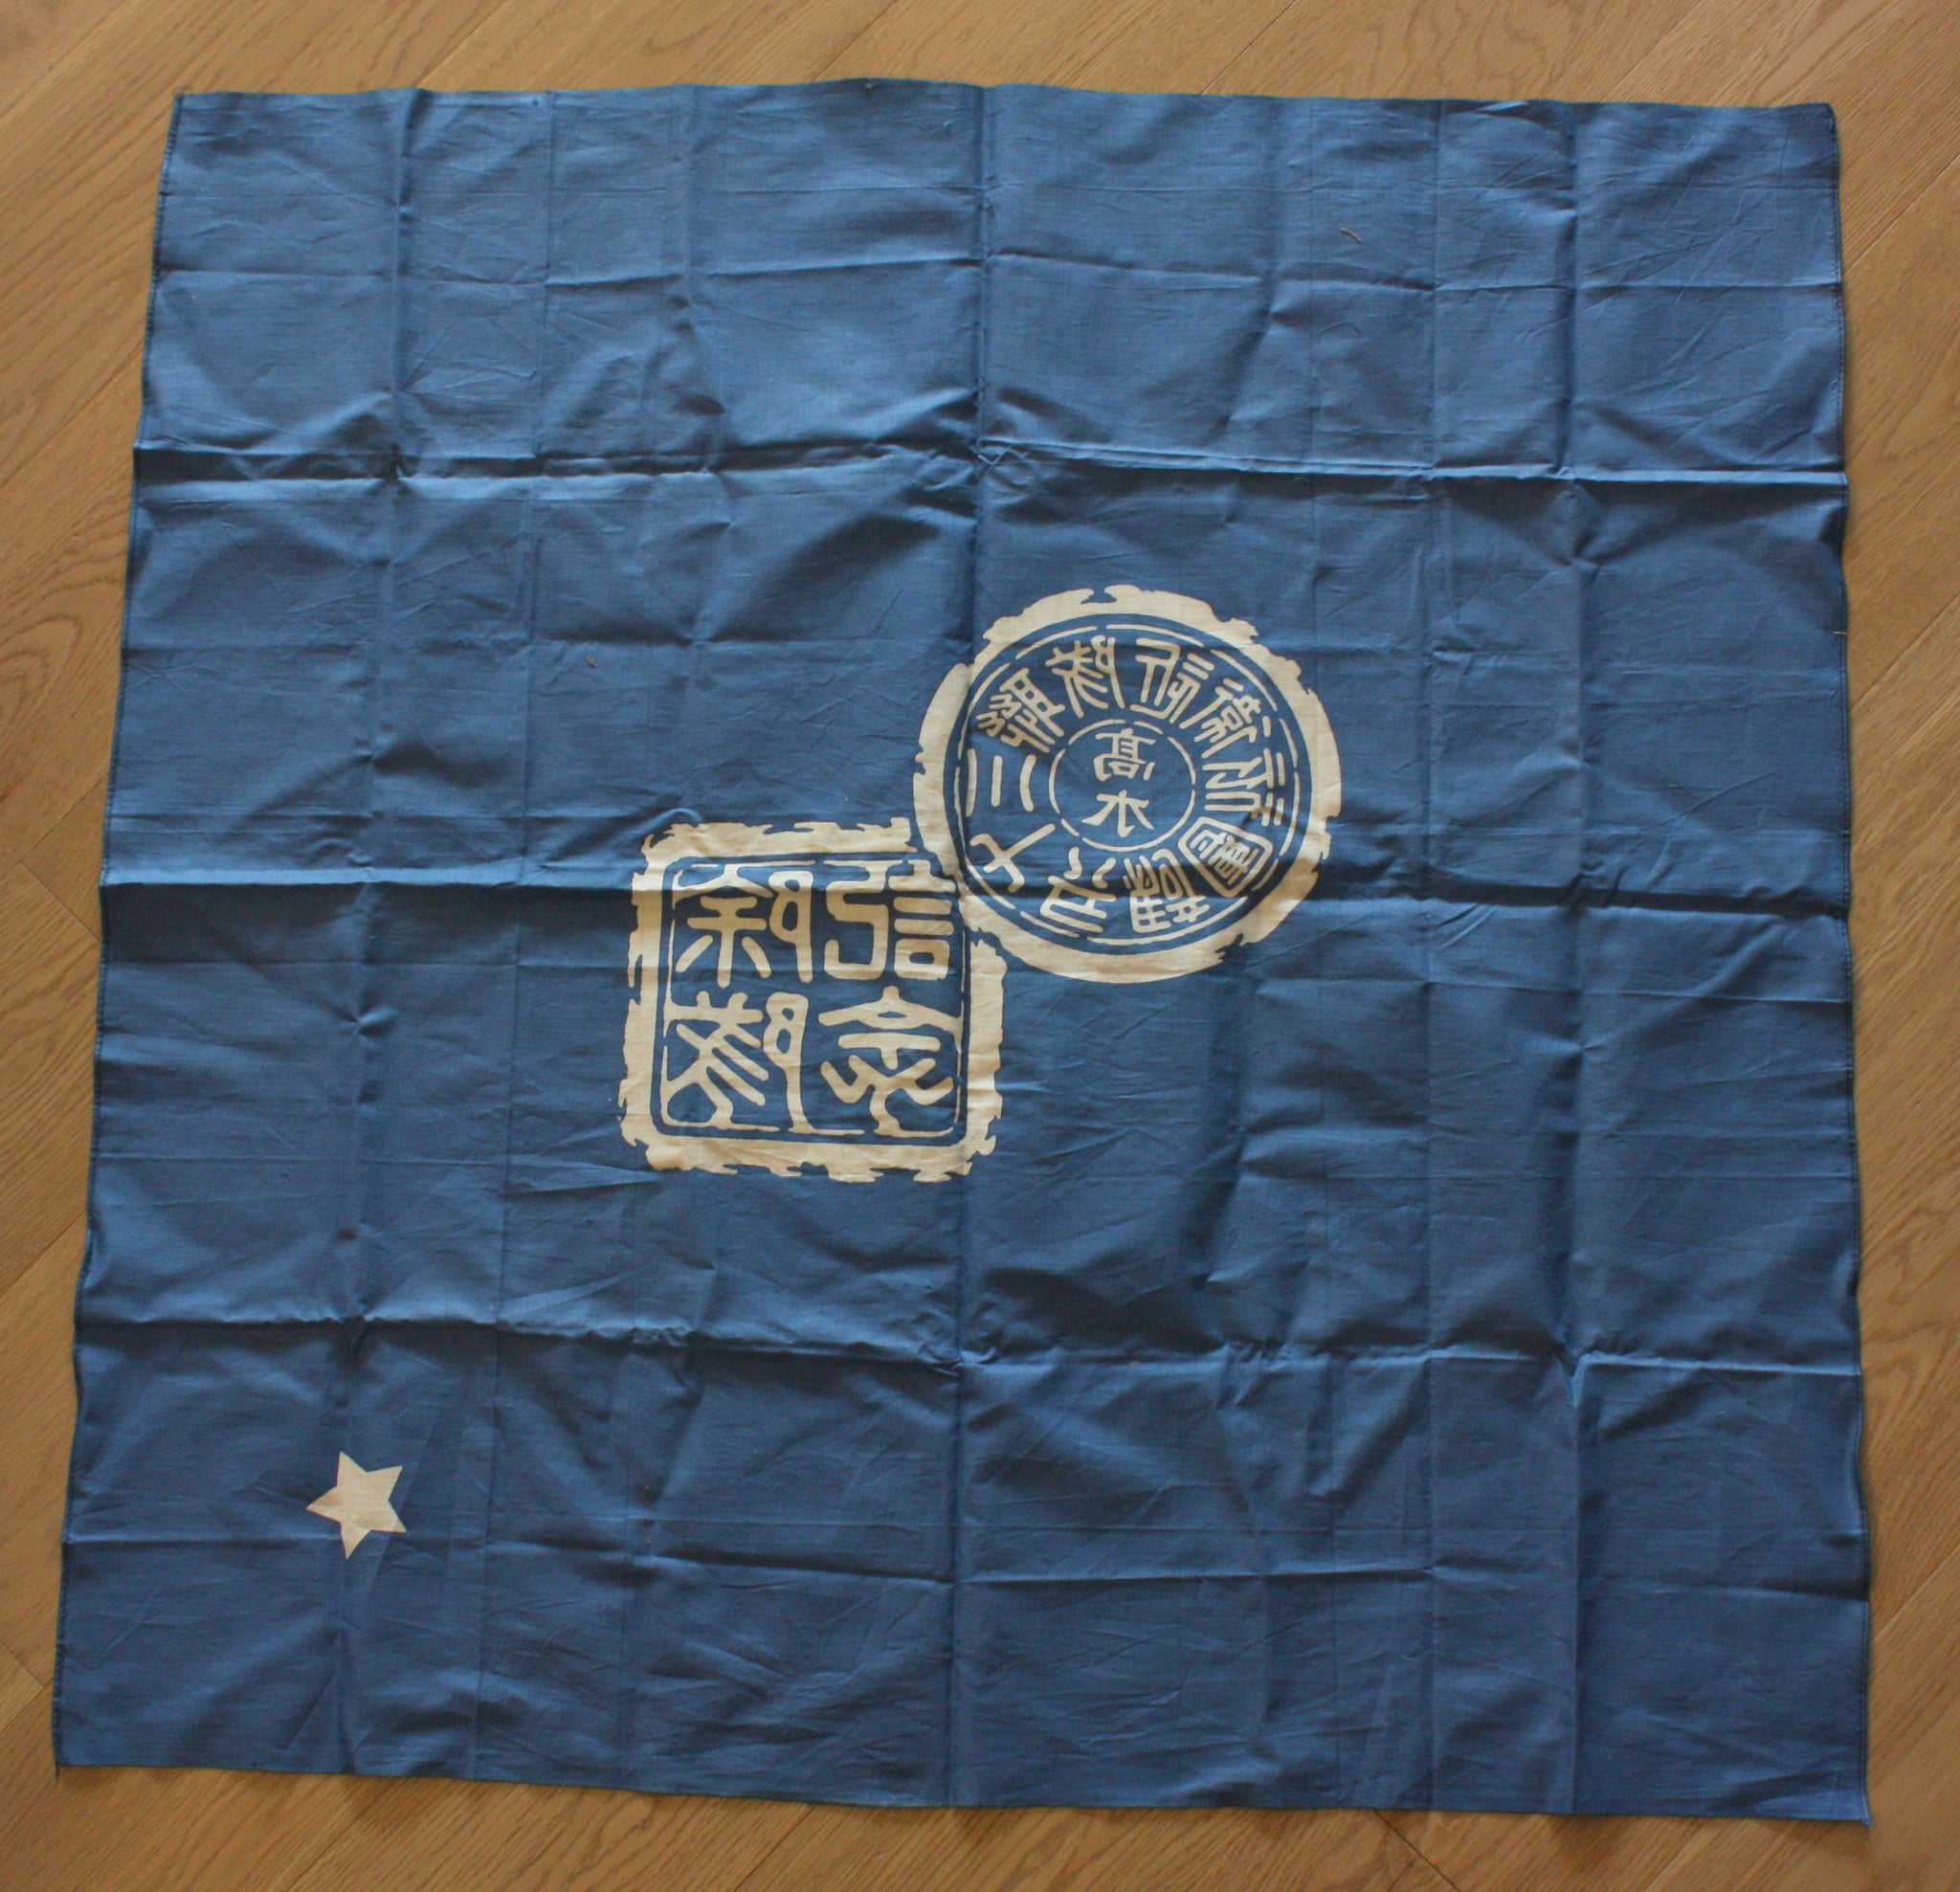 Antique Japanese Military Imperial Guards Brigade Cavalry Regiment Furoshiki Wrapping Cloth